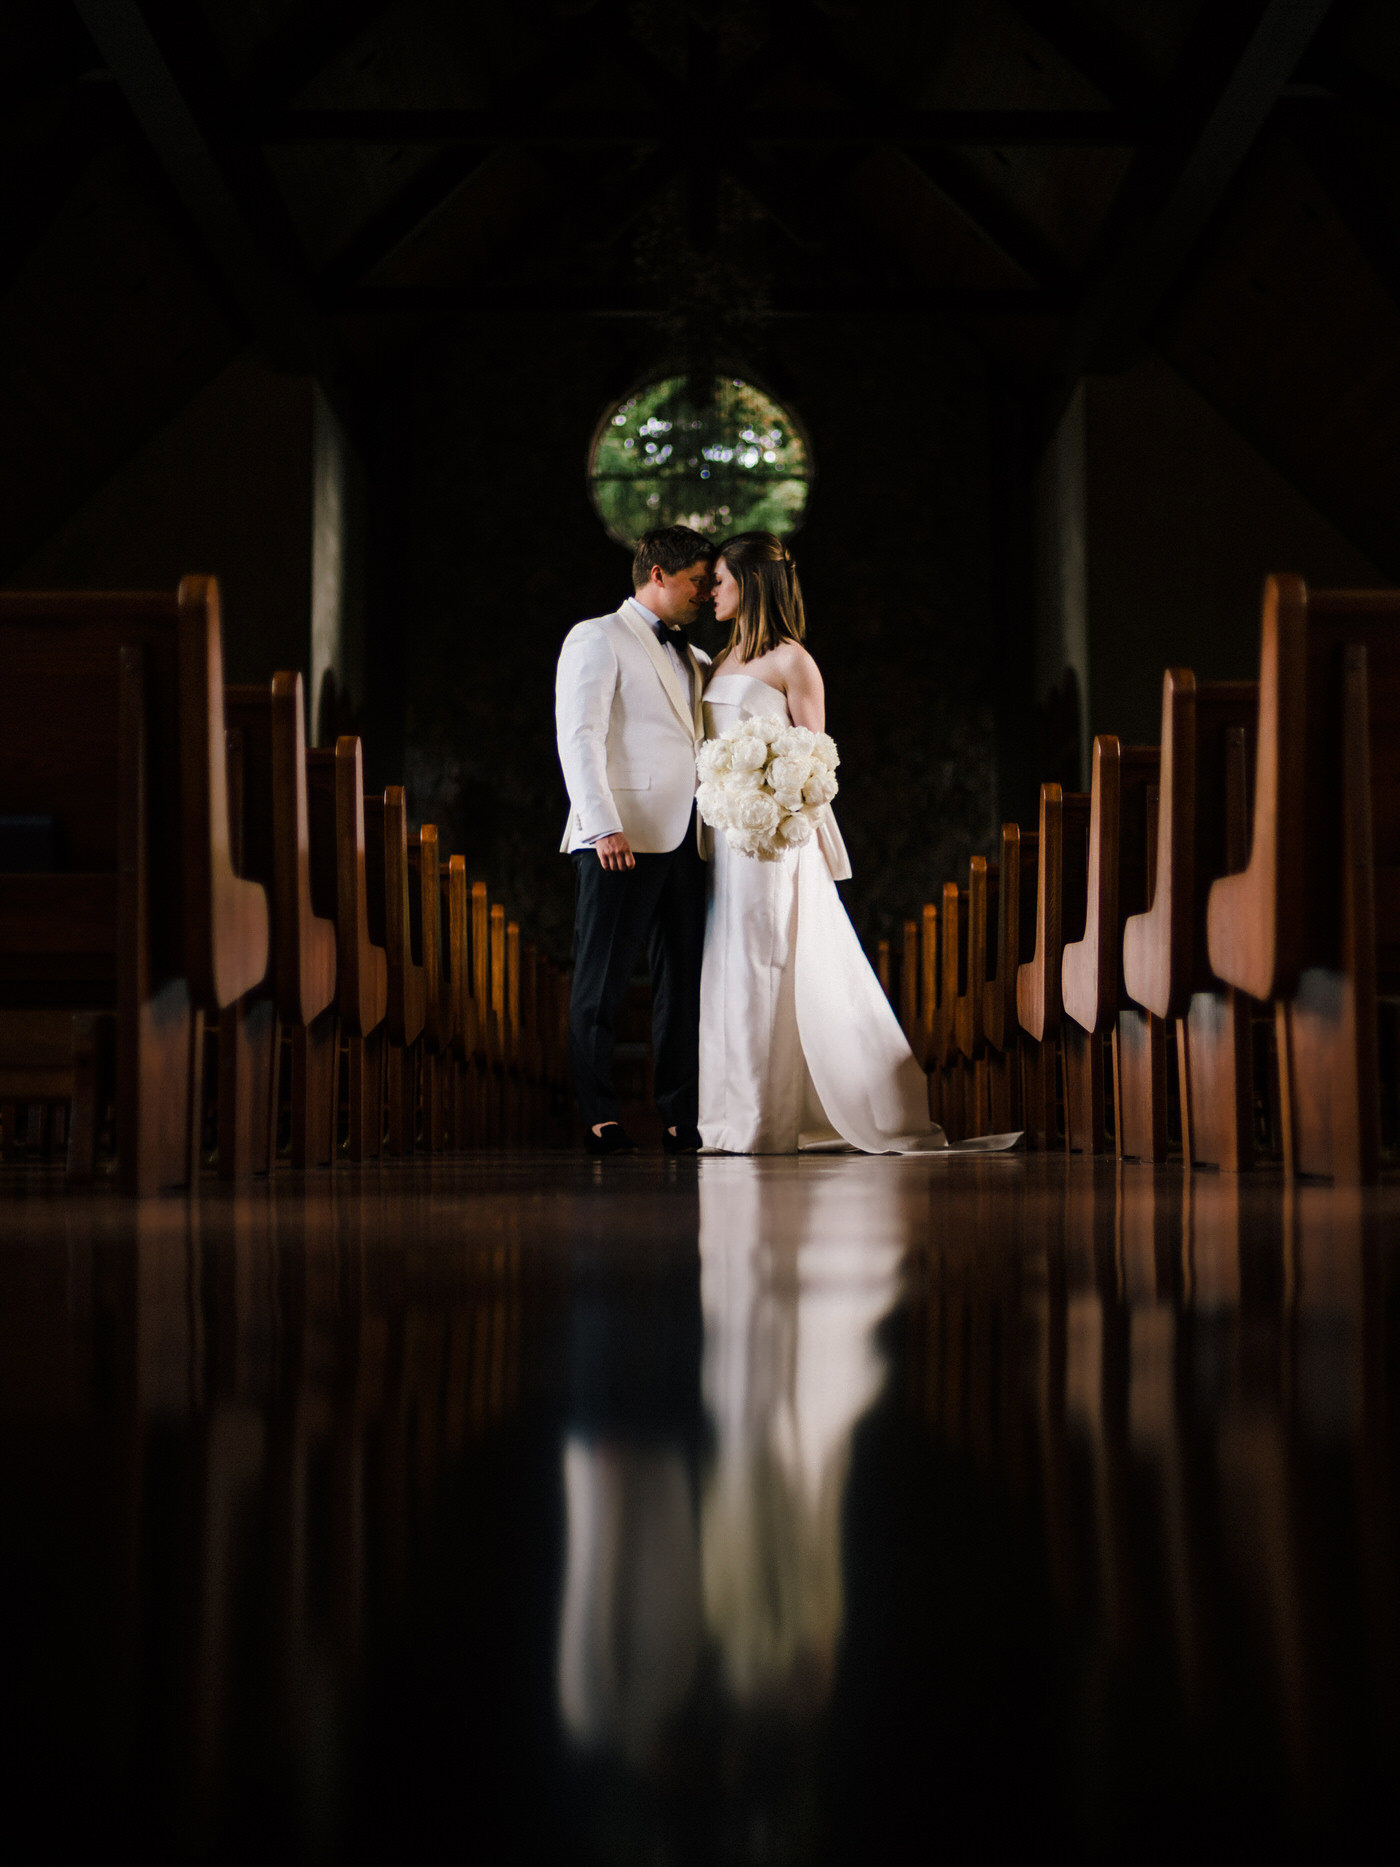 312-pacific-northwest-wedding-photography-by-ryan-flynn.jpg